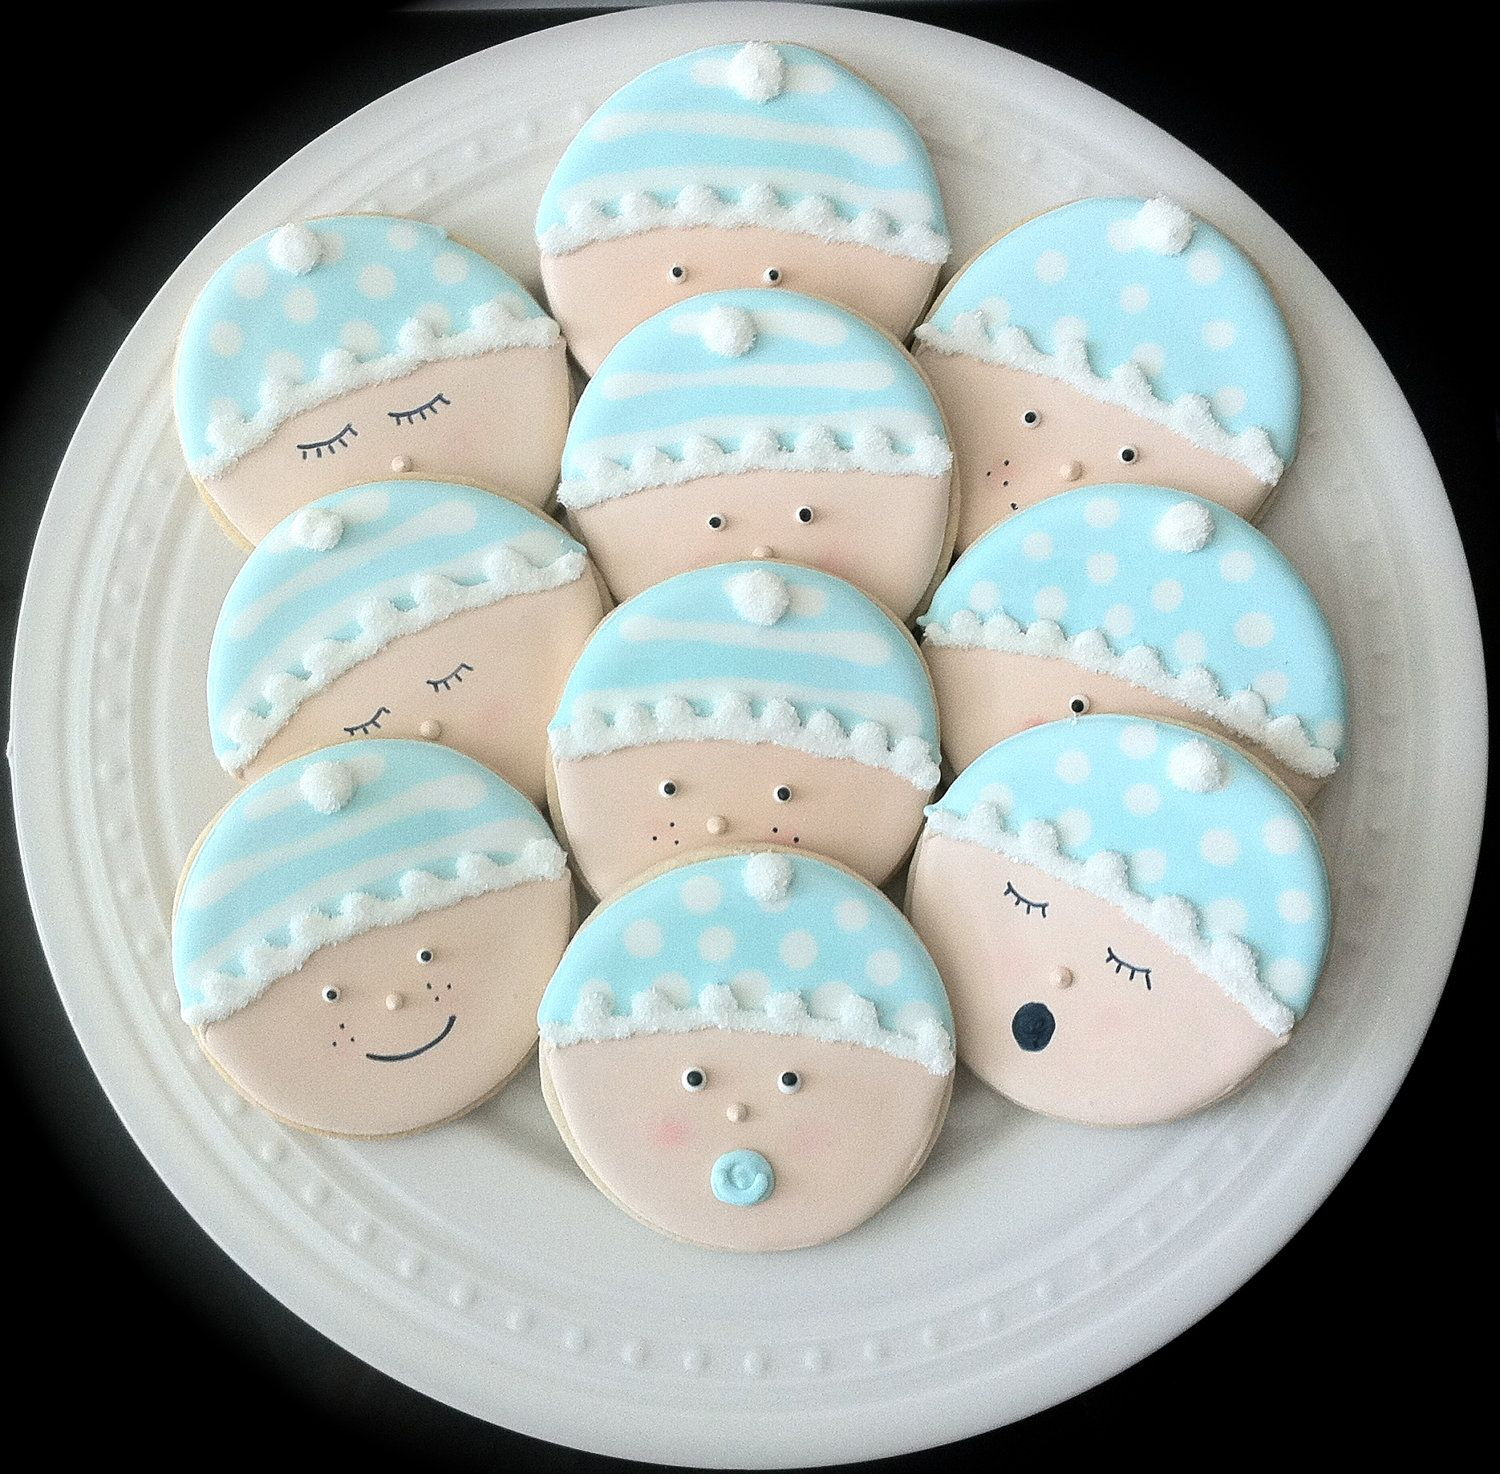 Decorated Baby Shower Cookies Cute Baby Faces In By Peapodscookies